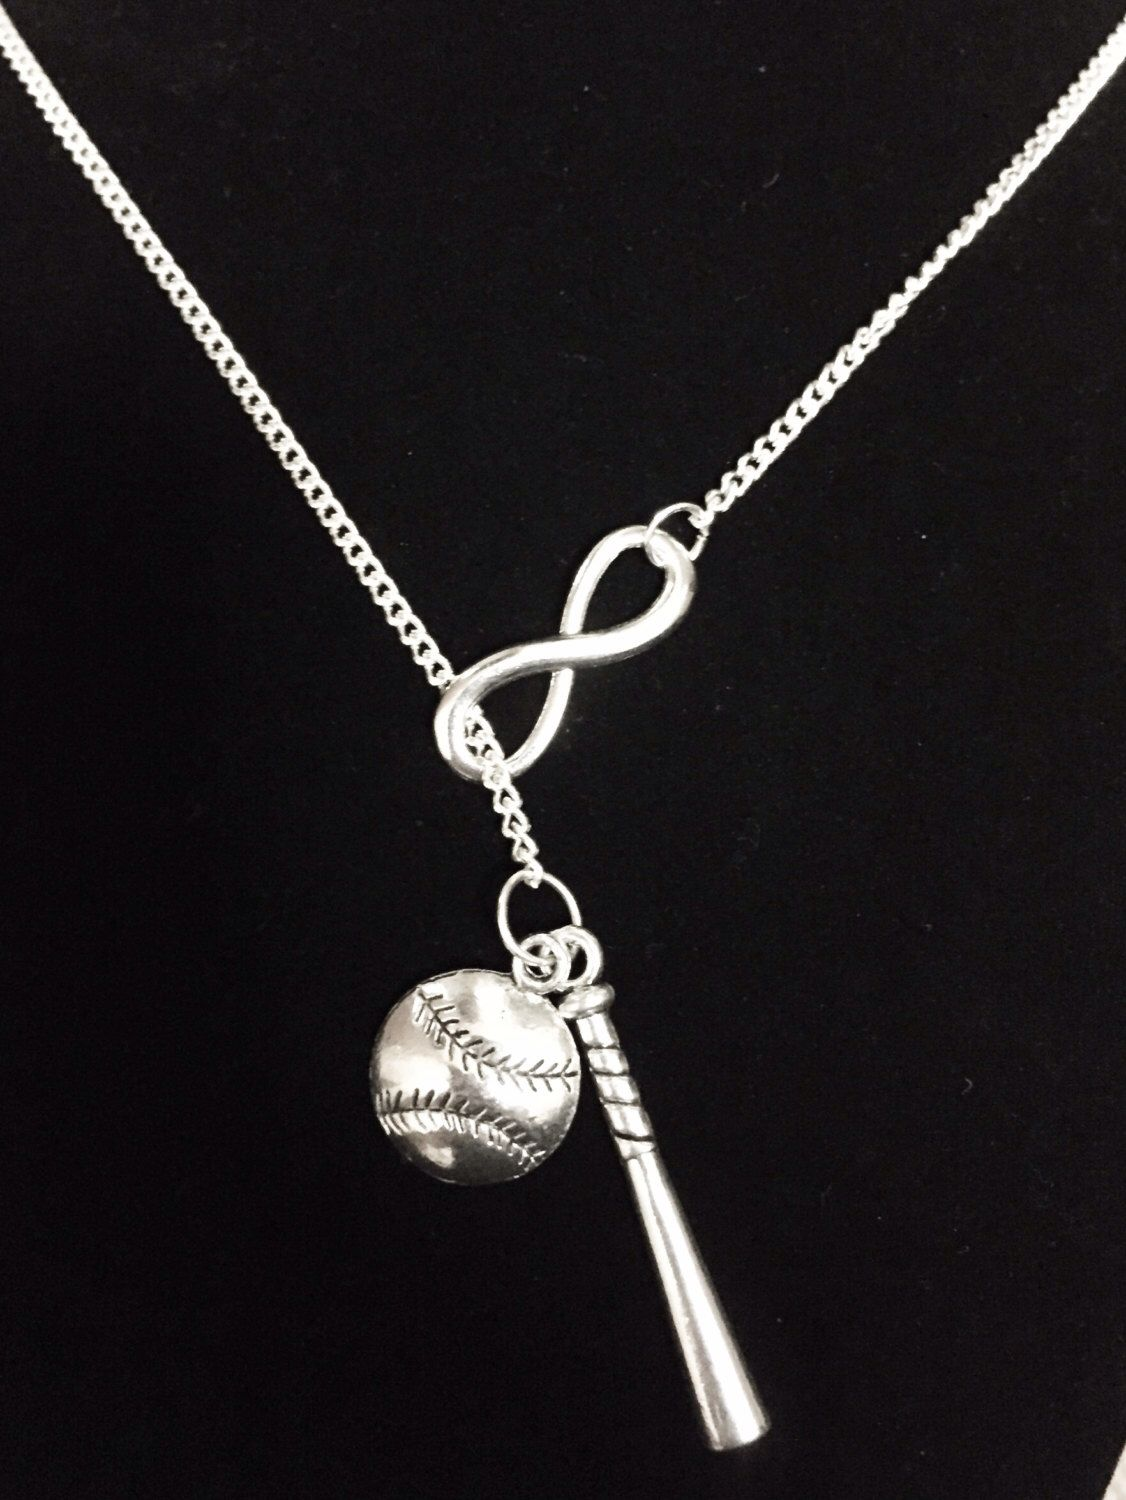 app large viralstyle softball necklace campaigns front campaign prayer